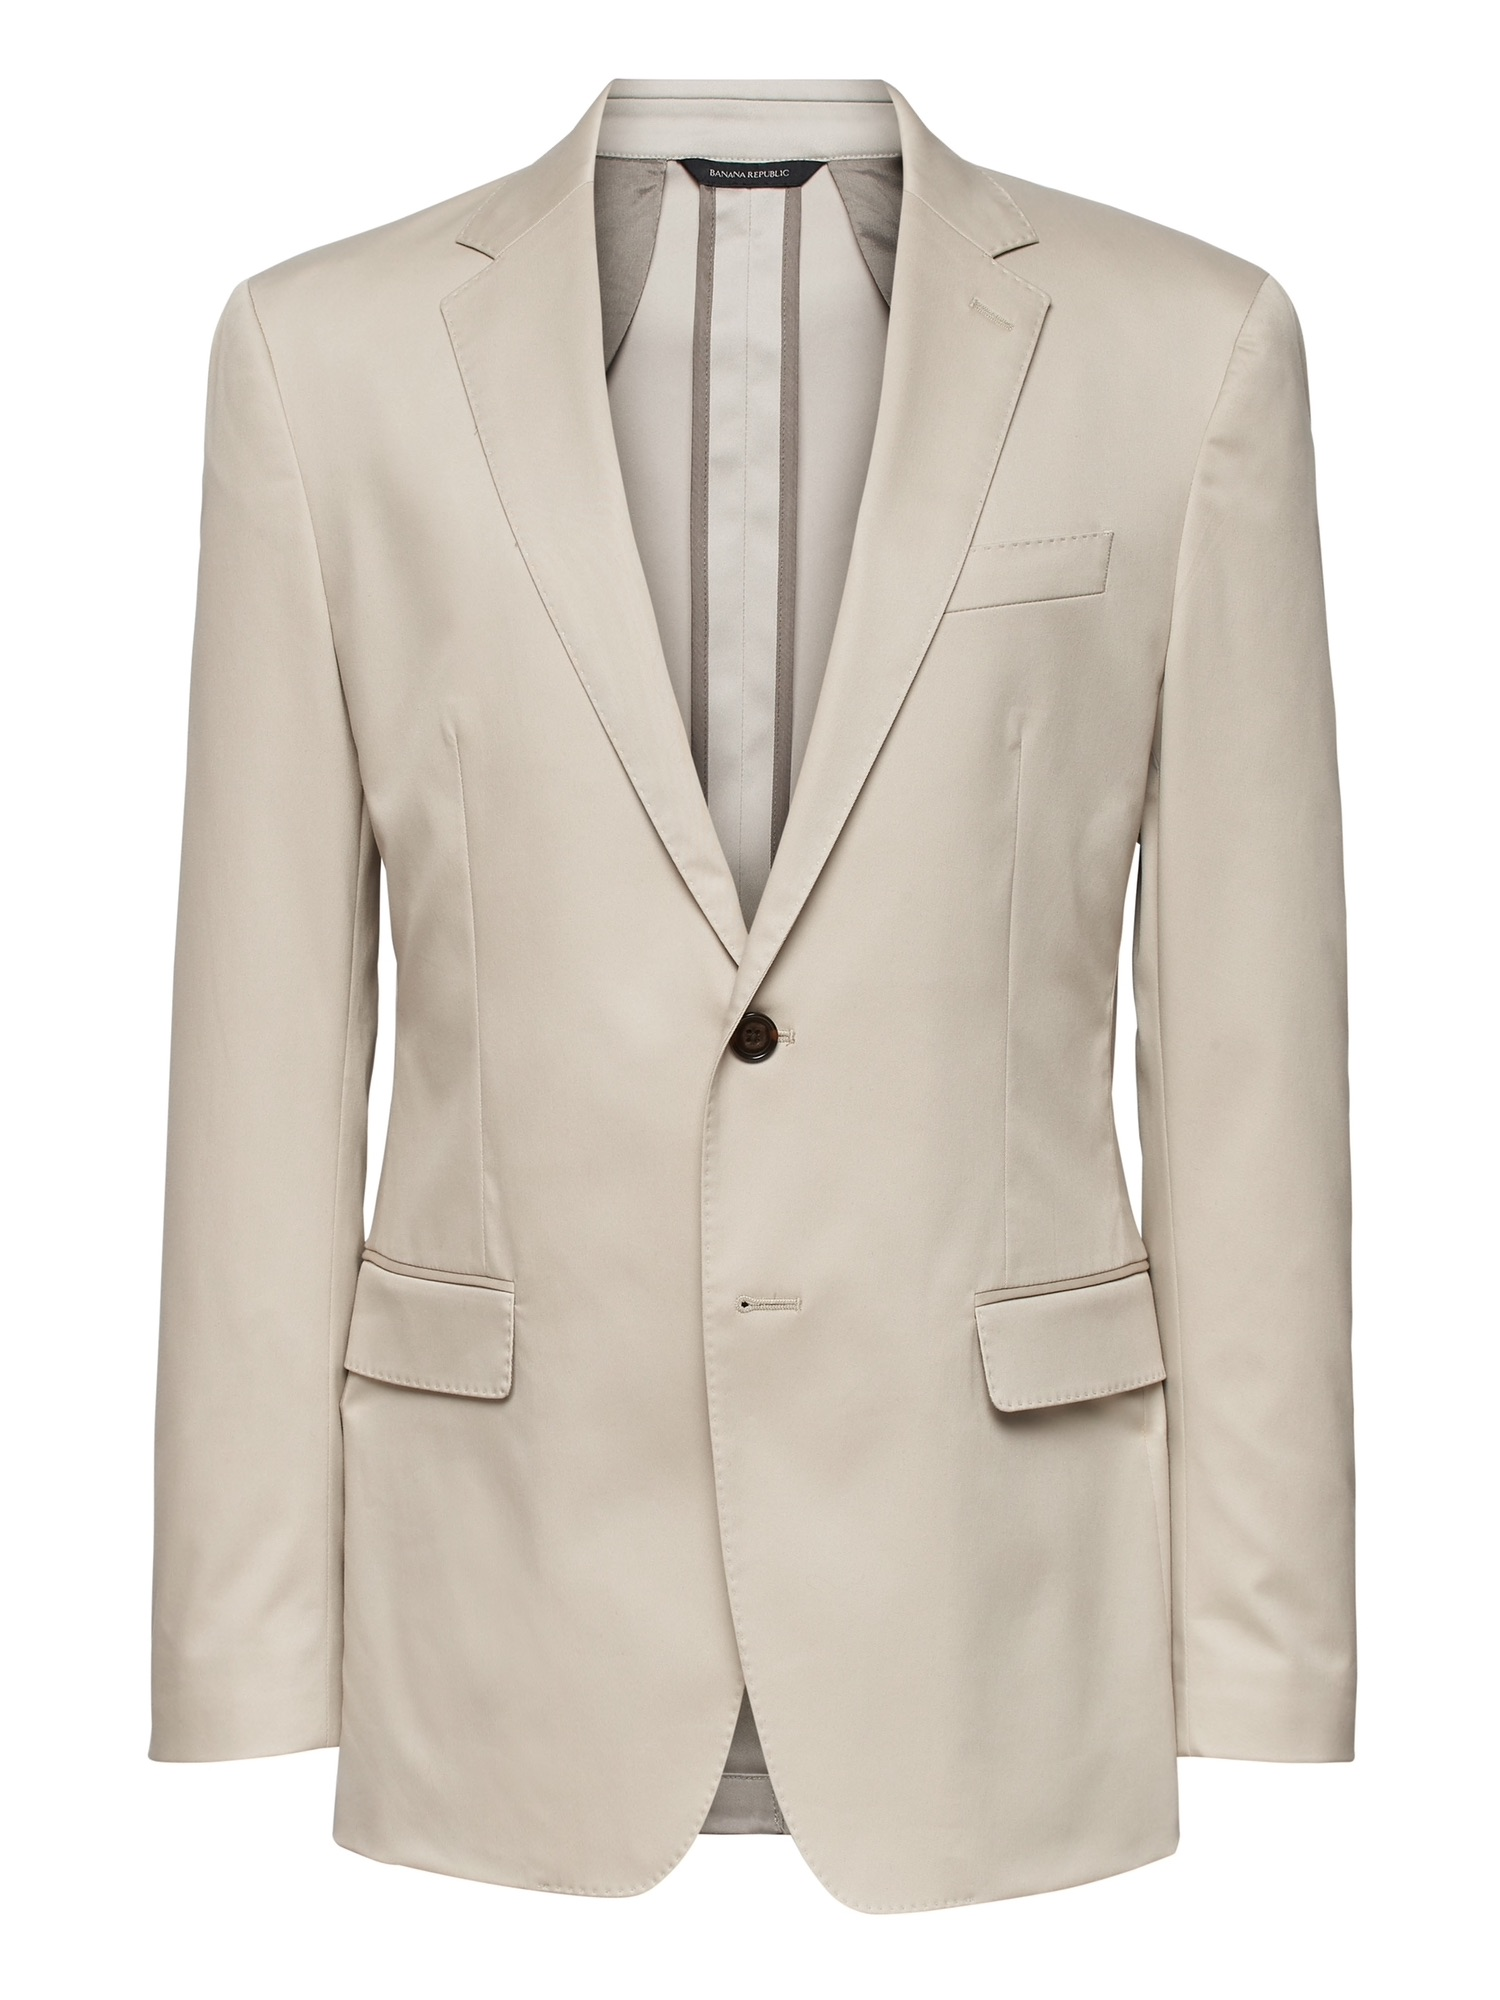 Slim Core Temp Blazer - Banana Republic's new half-lined warm weather blazer for the office and dinner